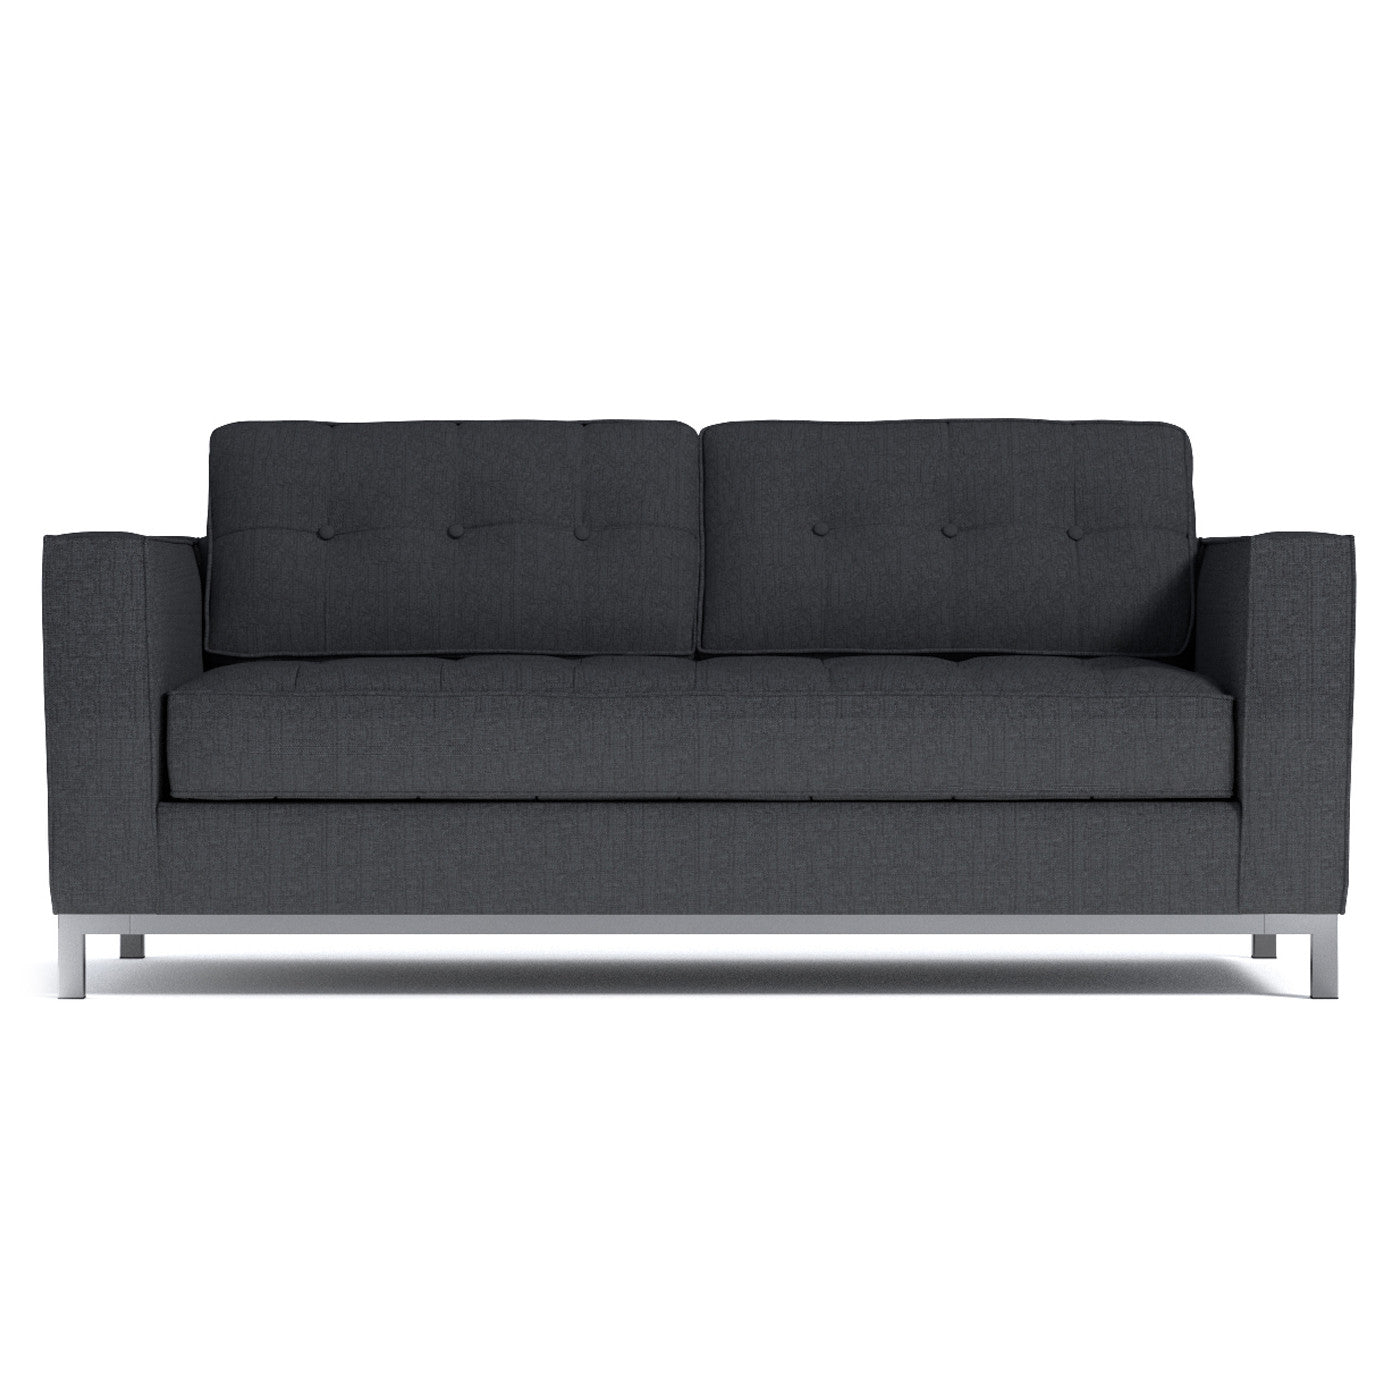 fillmore apartment size sofa from kyle schuneman choice of fabrics apt2b 1